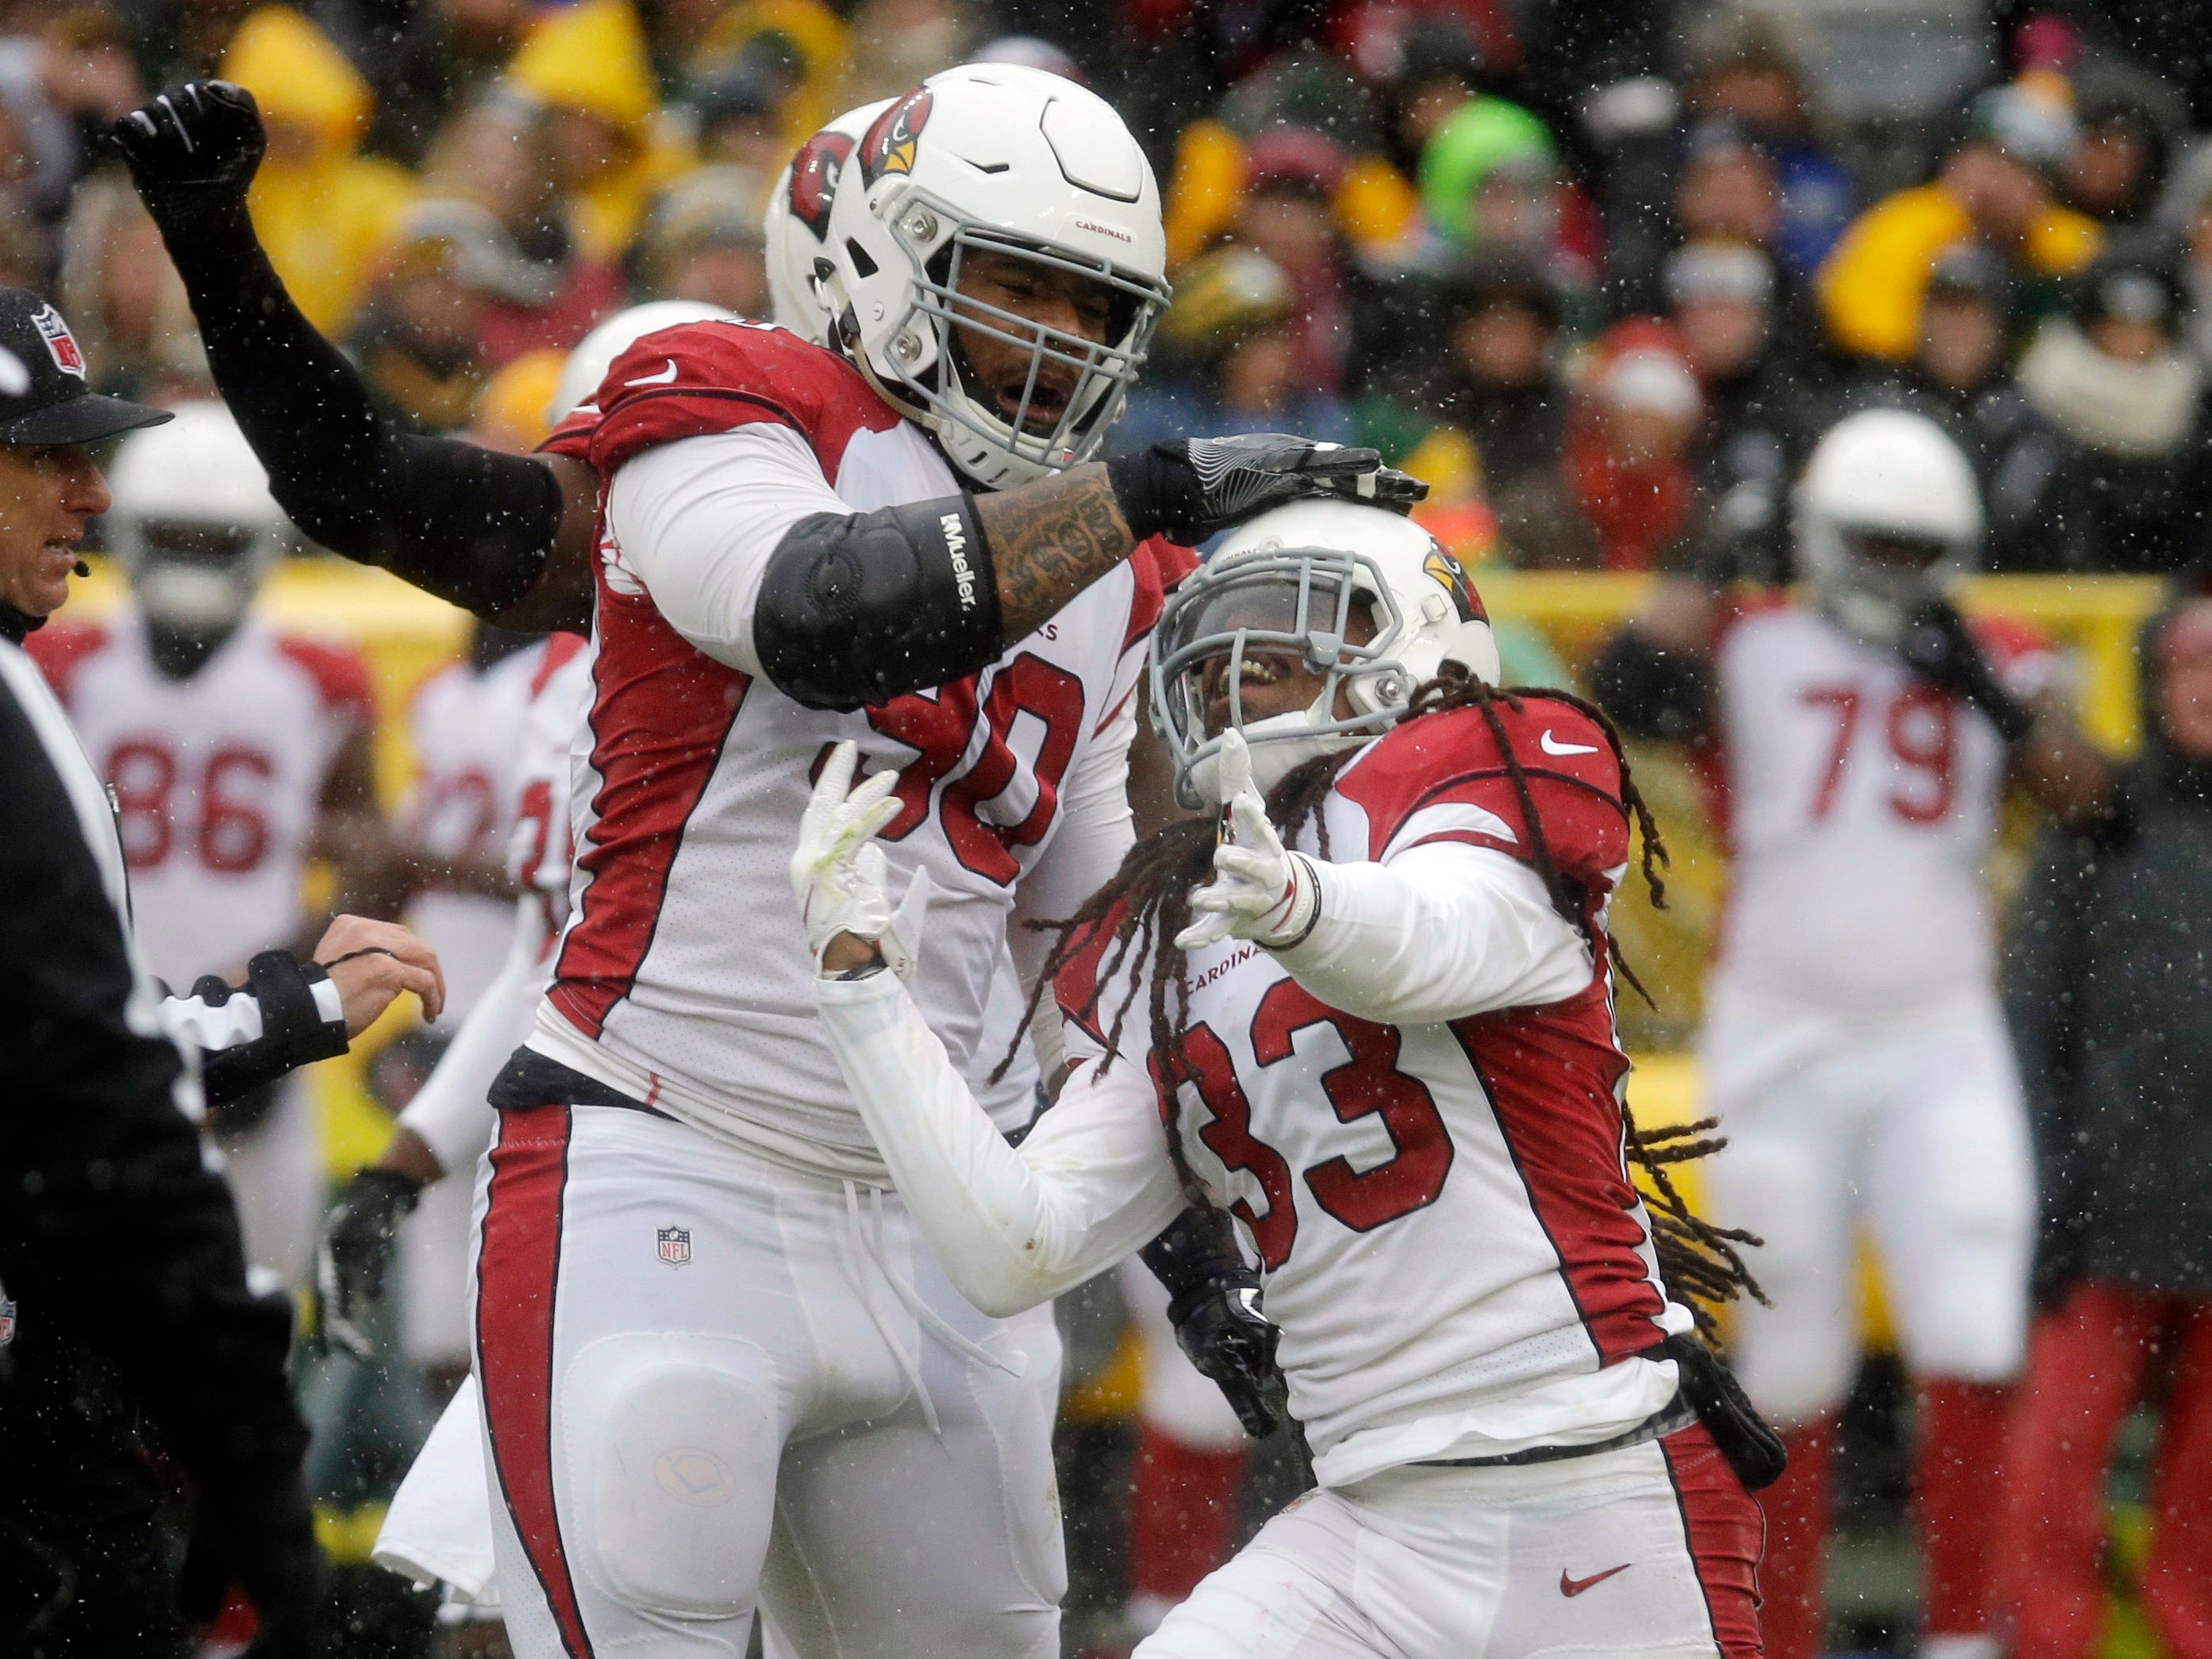 Arizona Cardinals defensive back Tre Boston (33) and defensive tackle Robert Nkemdiche (90) celebrate after a play against the Green Bay Packers during the first half of an NFL football game Sunday, Dec. 2, 2018, in Green Bay, Wis. (AP Photo/Mike Roemer)